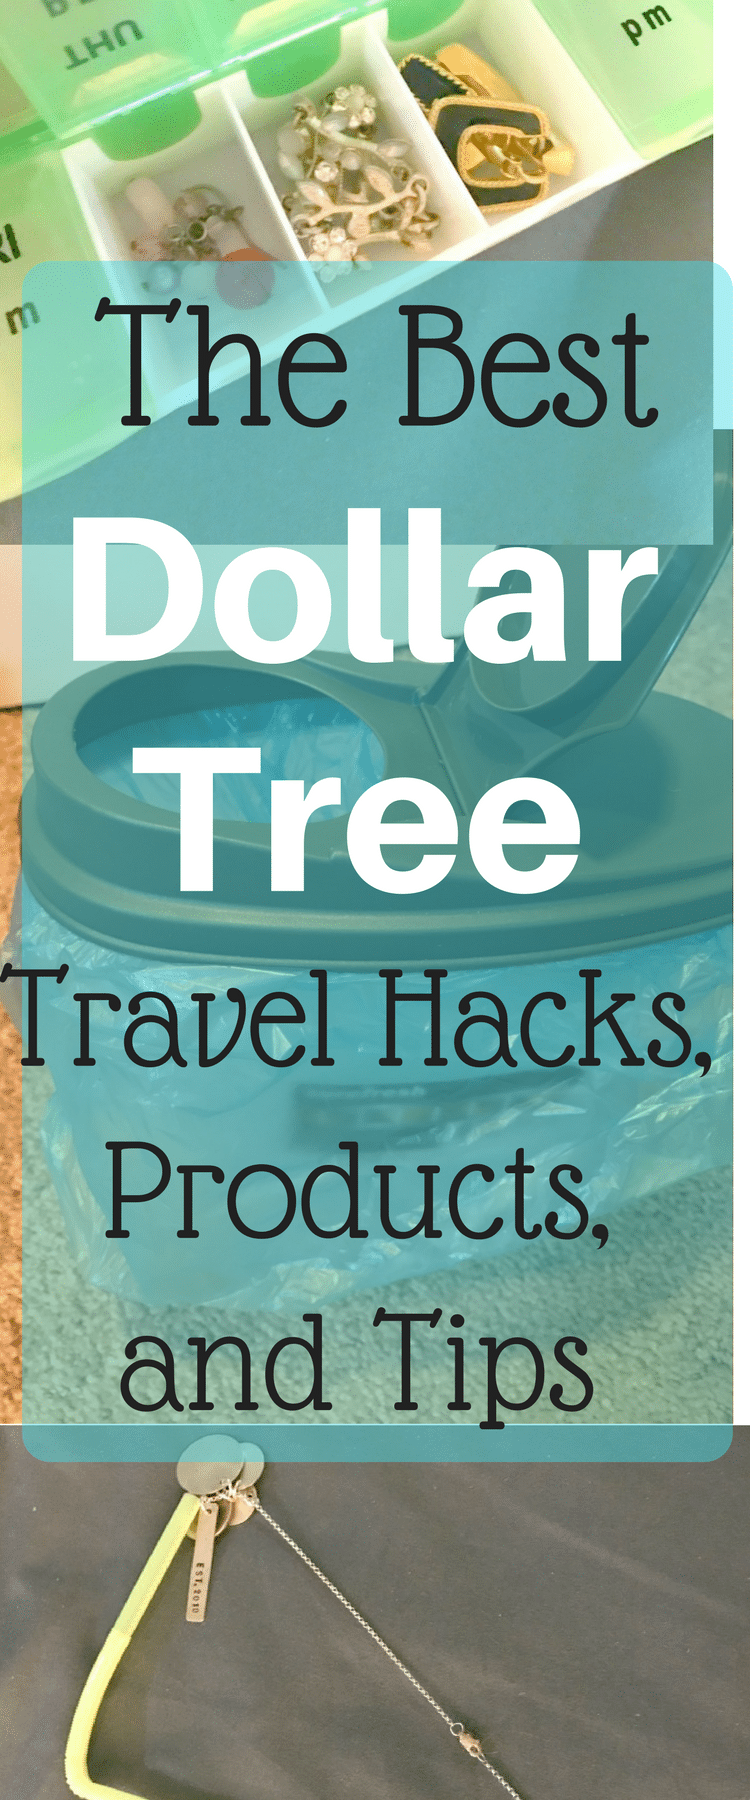 3cd717d7bb88 Dollar Tree Travel Hacks   Dollar Tree Hacks   Dollar Tree Tips   Dollar  Tree Products